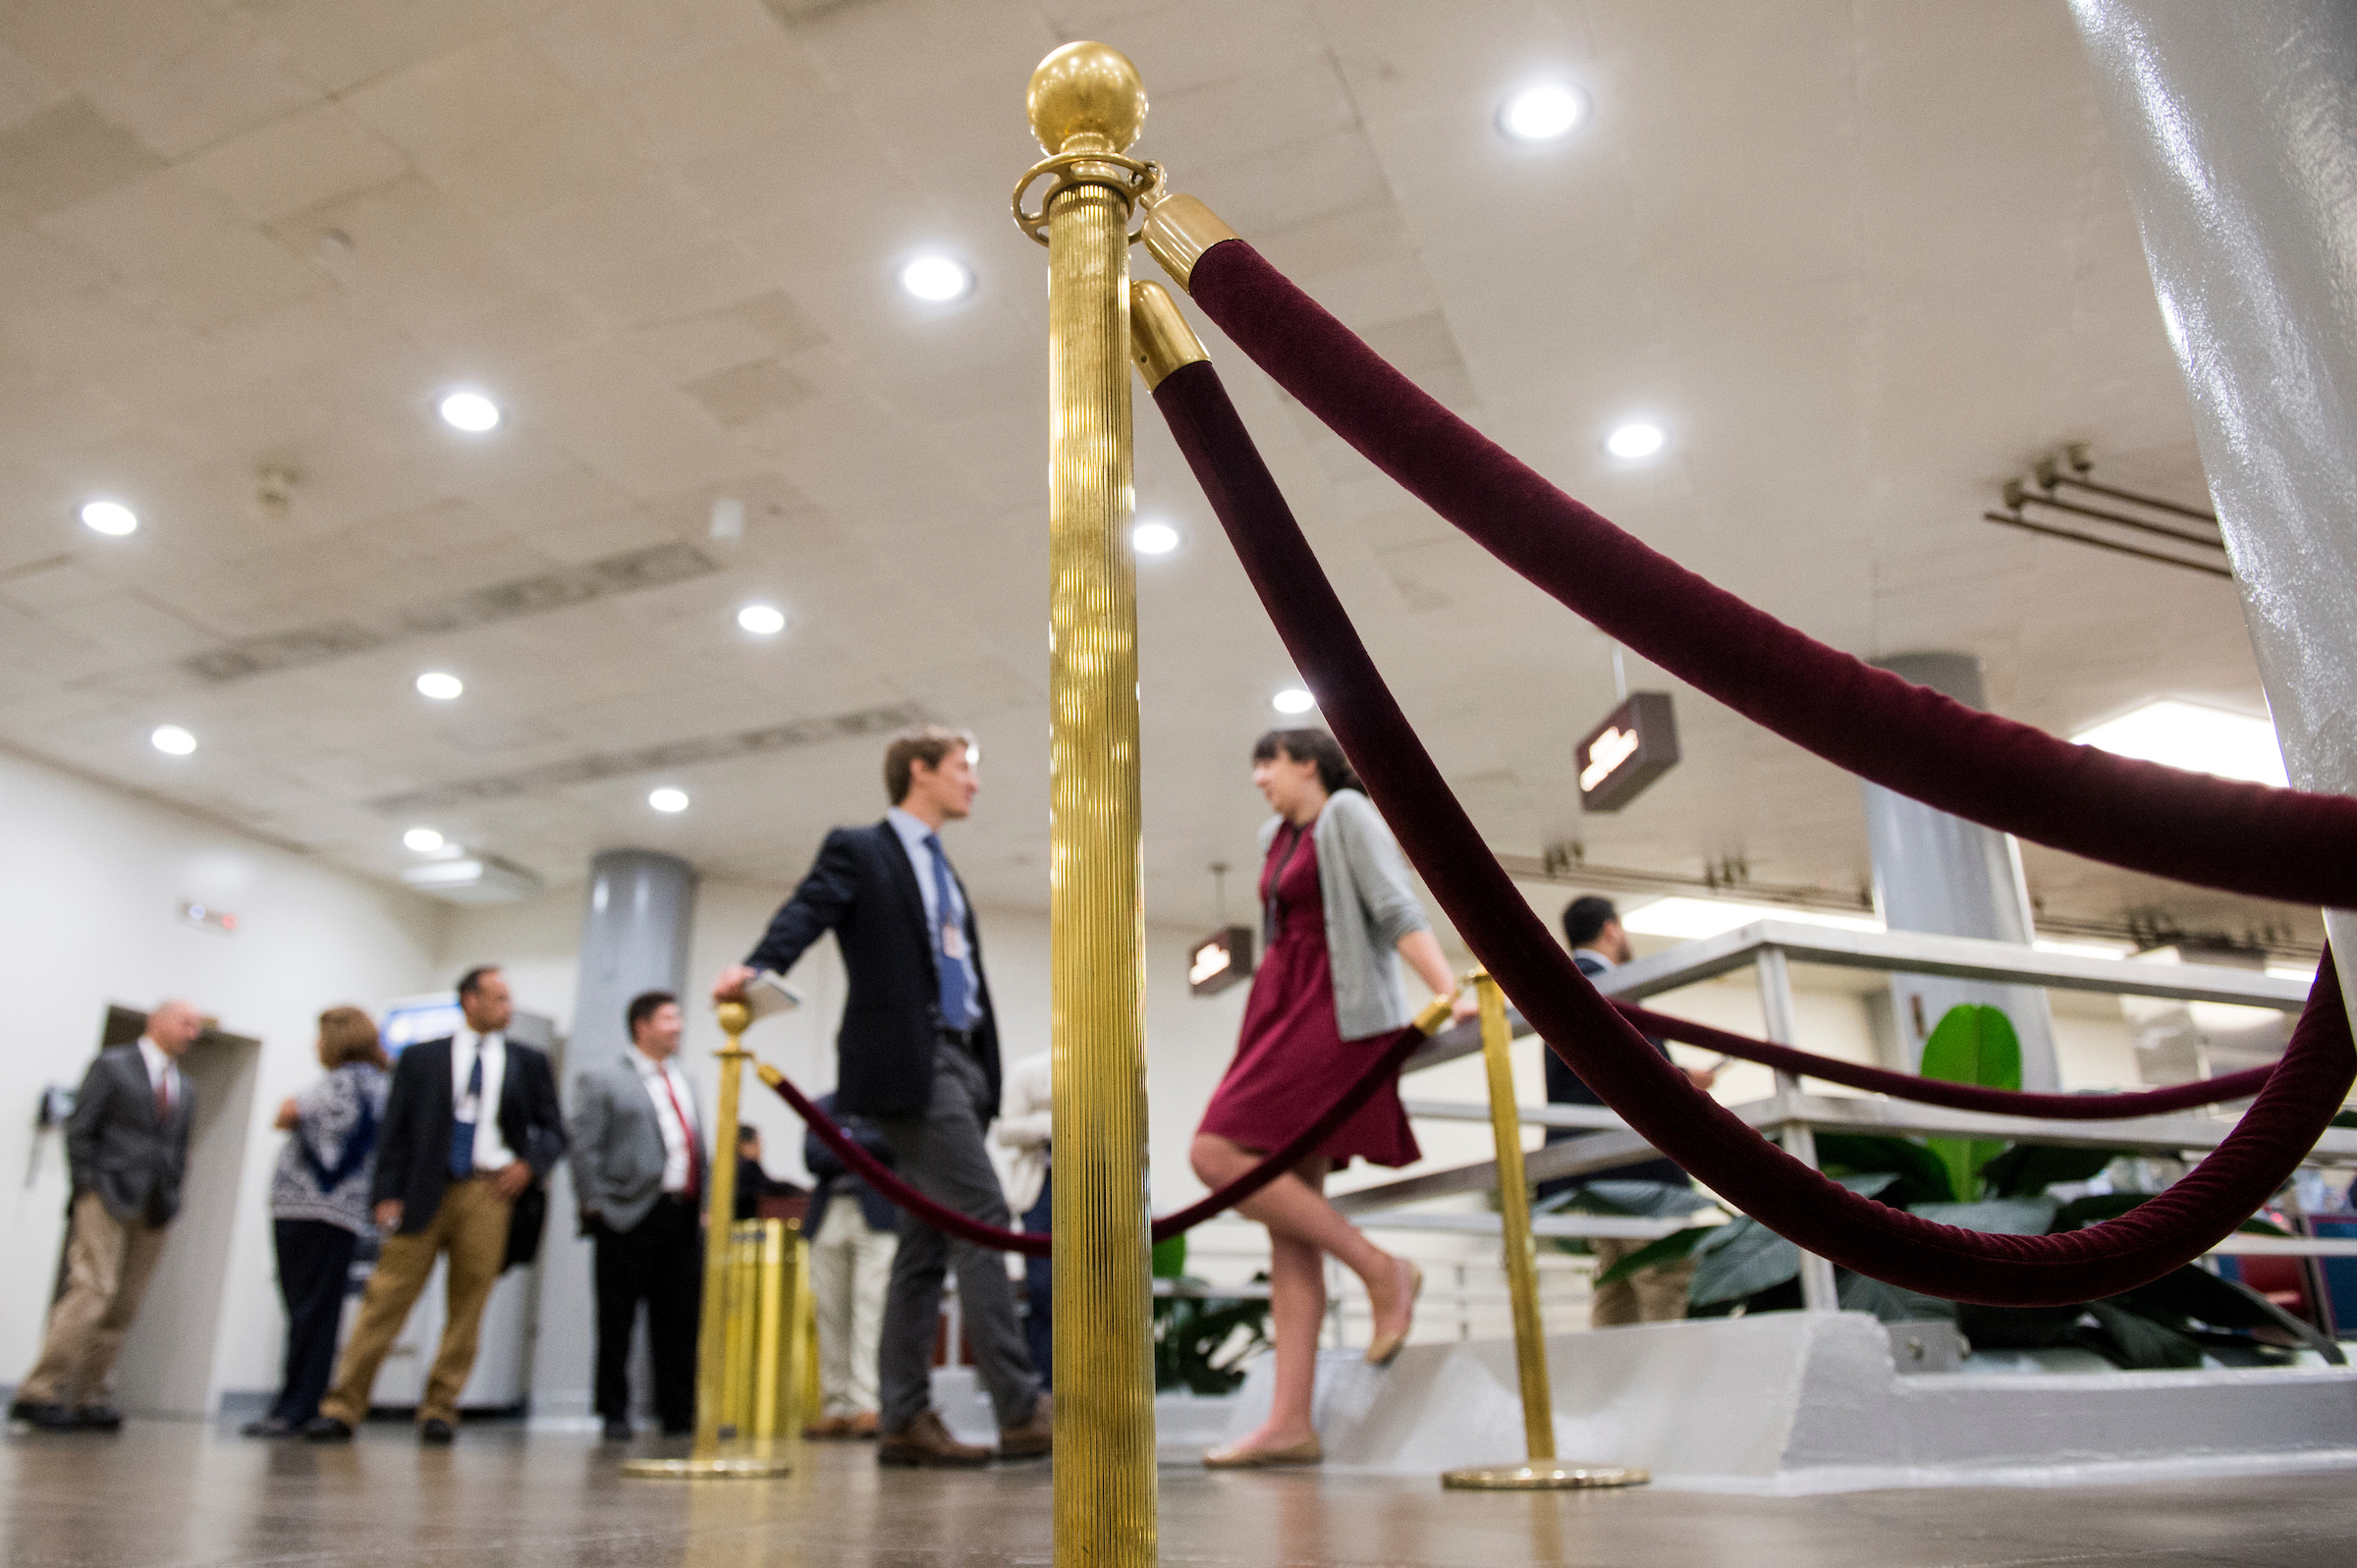 Ropes and stanchions have been set up in the area of the Senate subway stop in the U.S. Capitol to help control the growing crowds of reporters. (Bill Clark/CQ Roll Call)